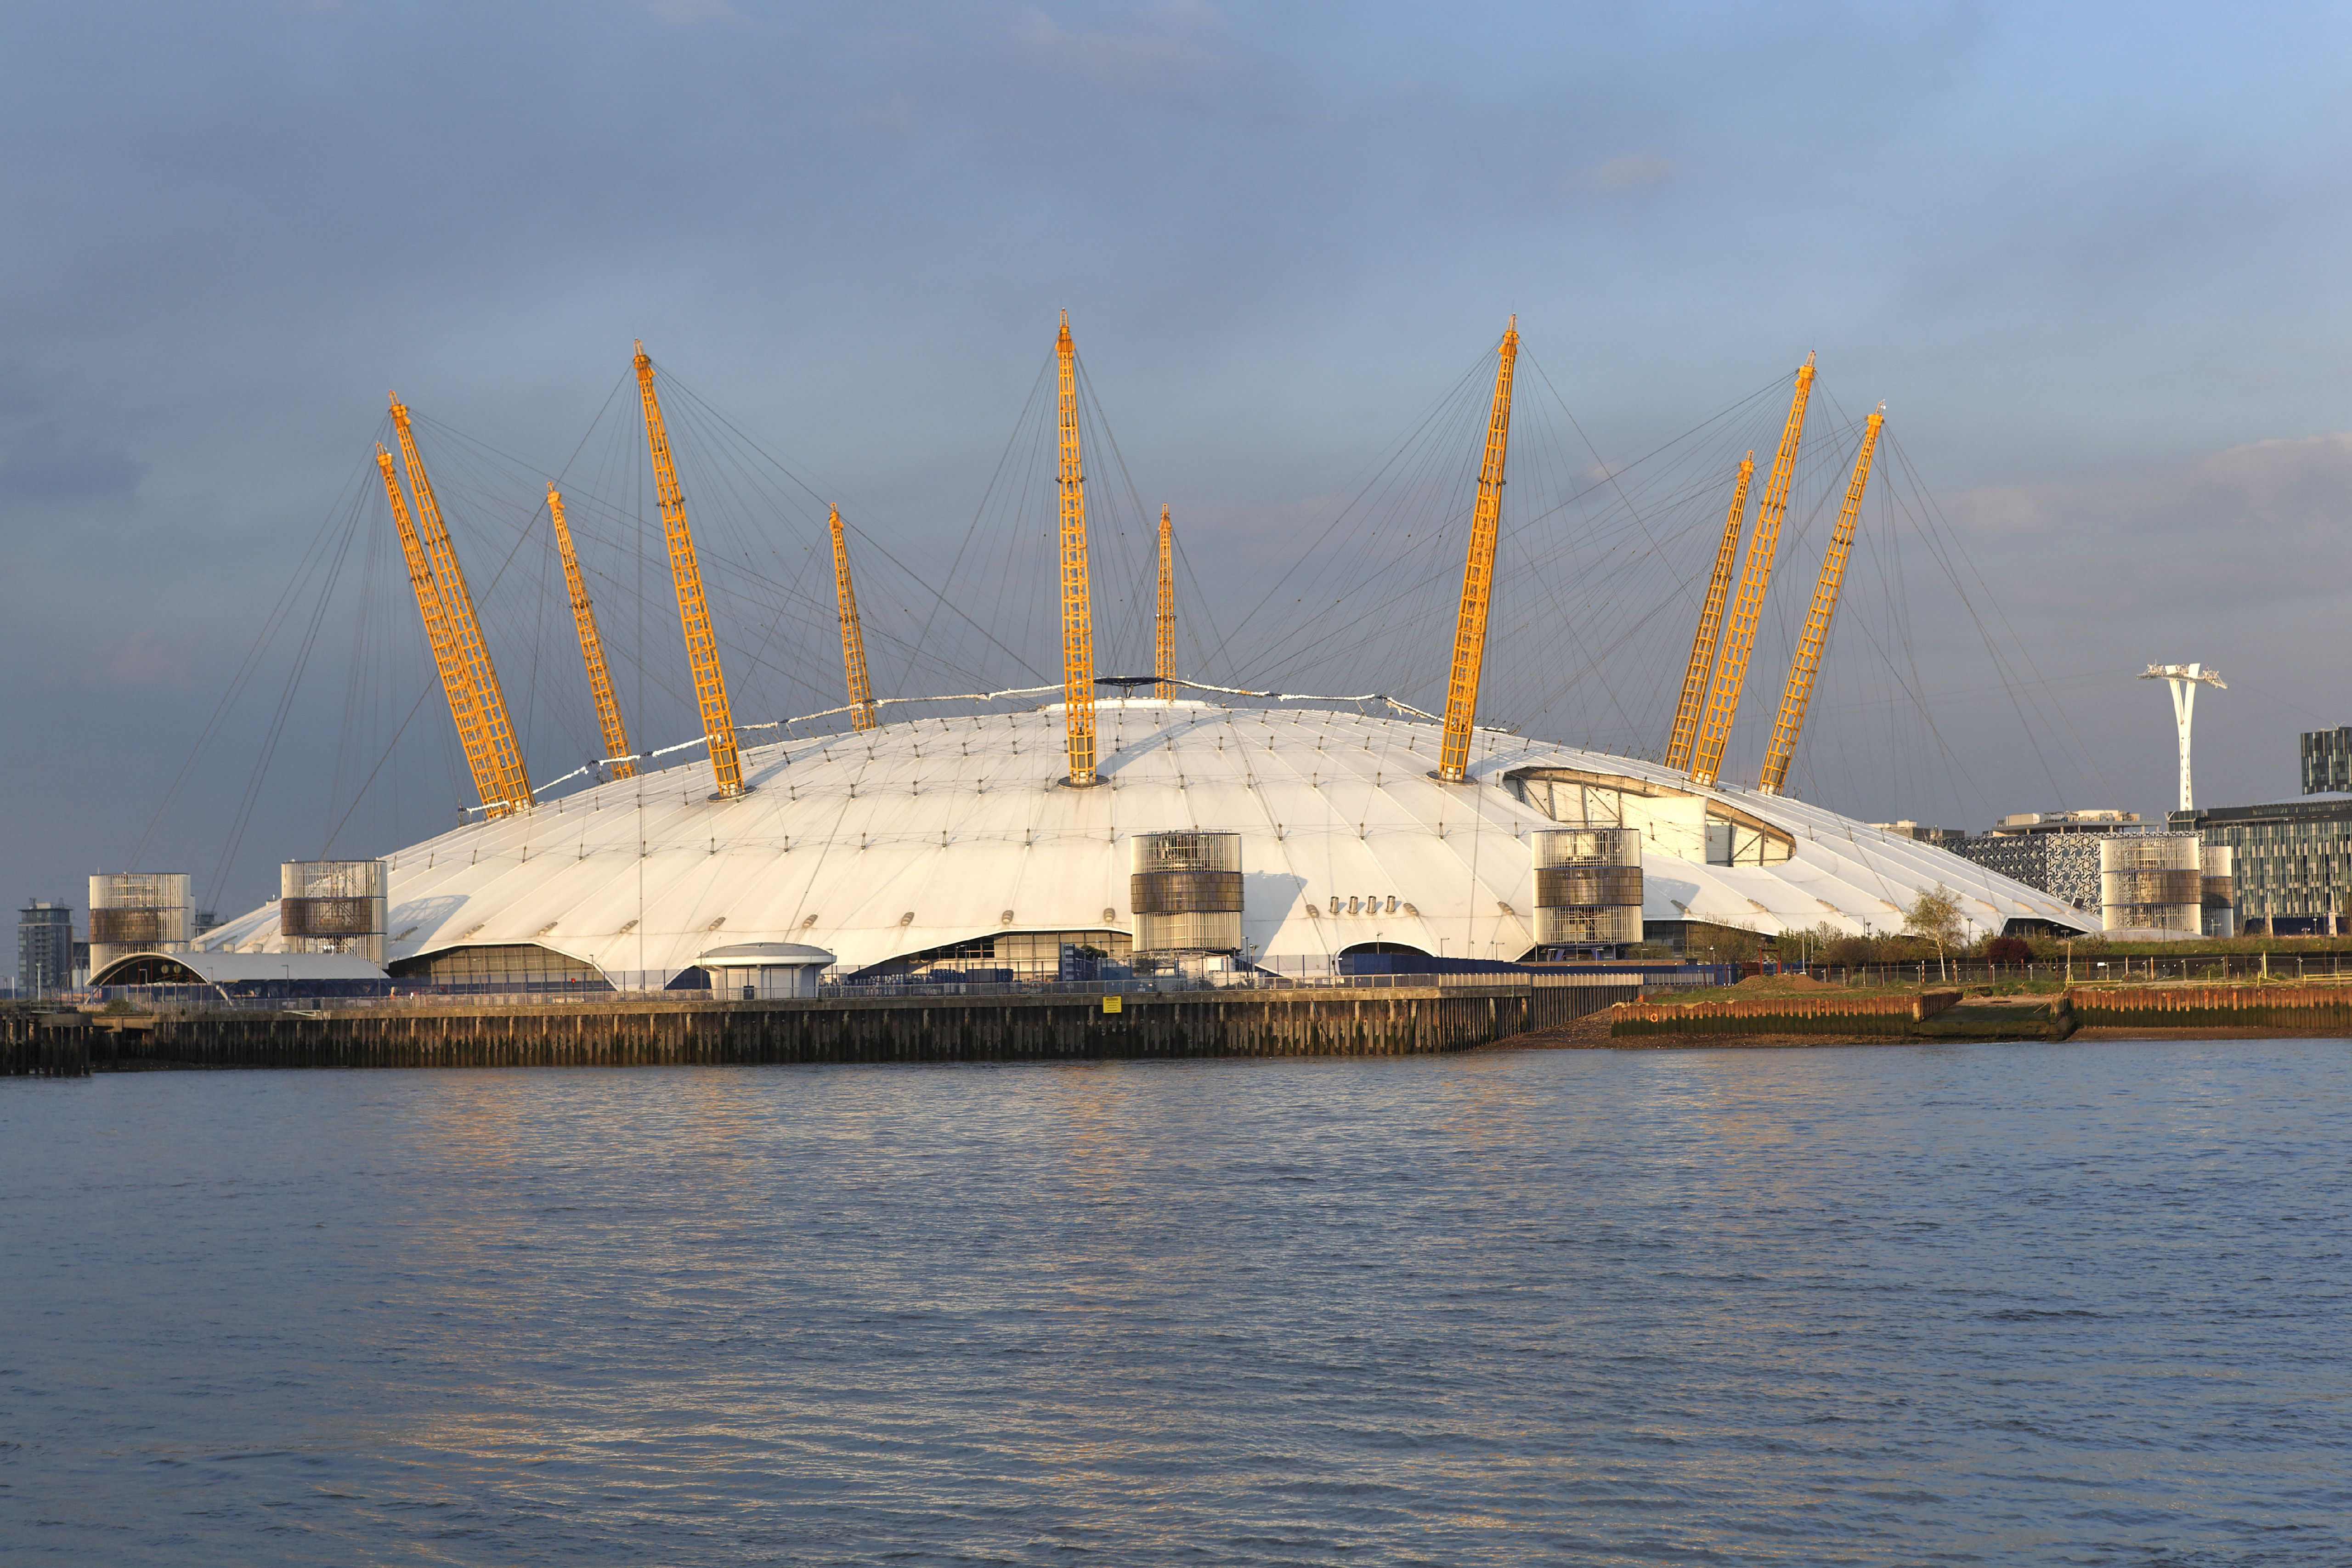 The Millennium Dome in London